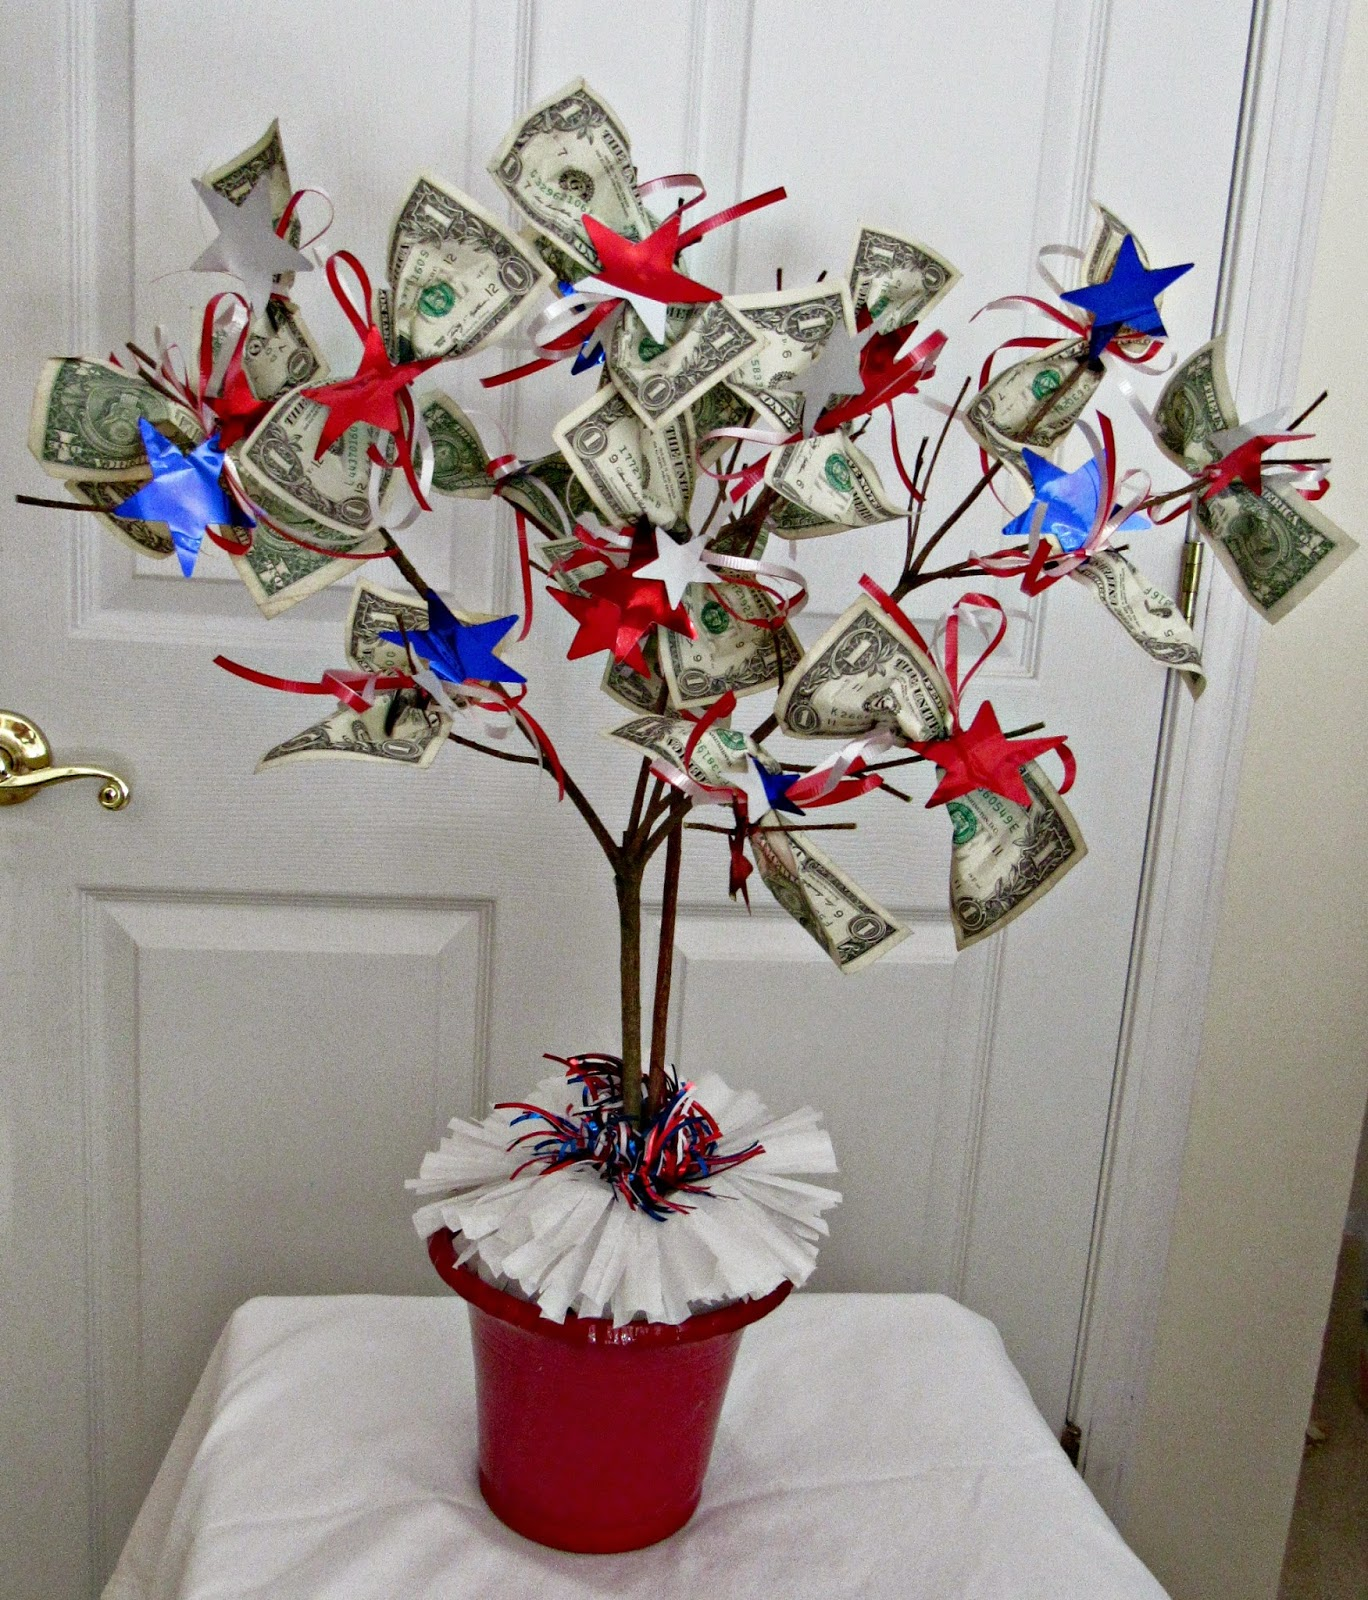 Need A Graduation Gift? Make A Money Tree